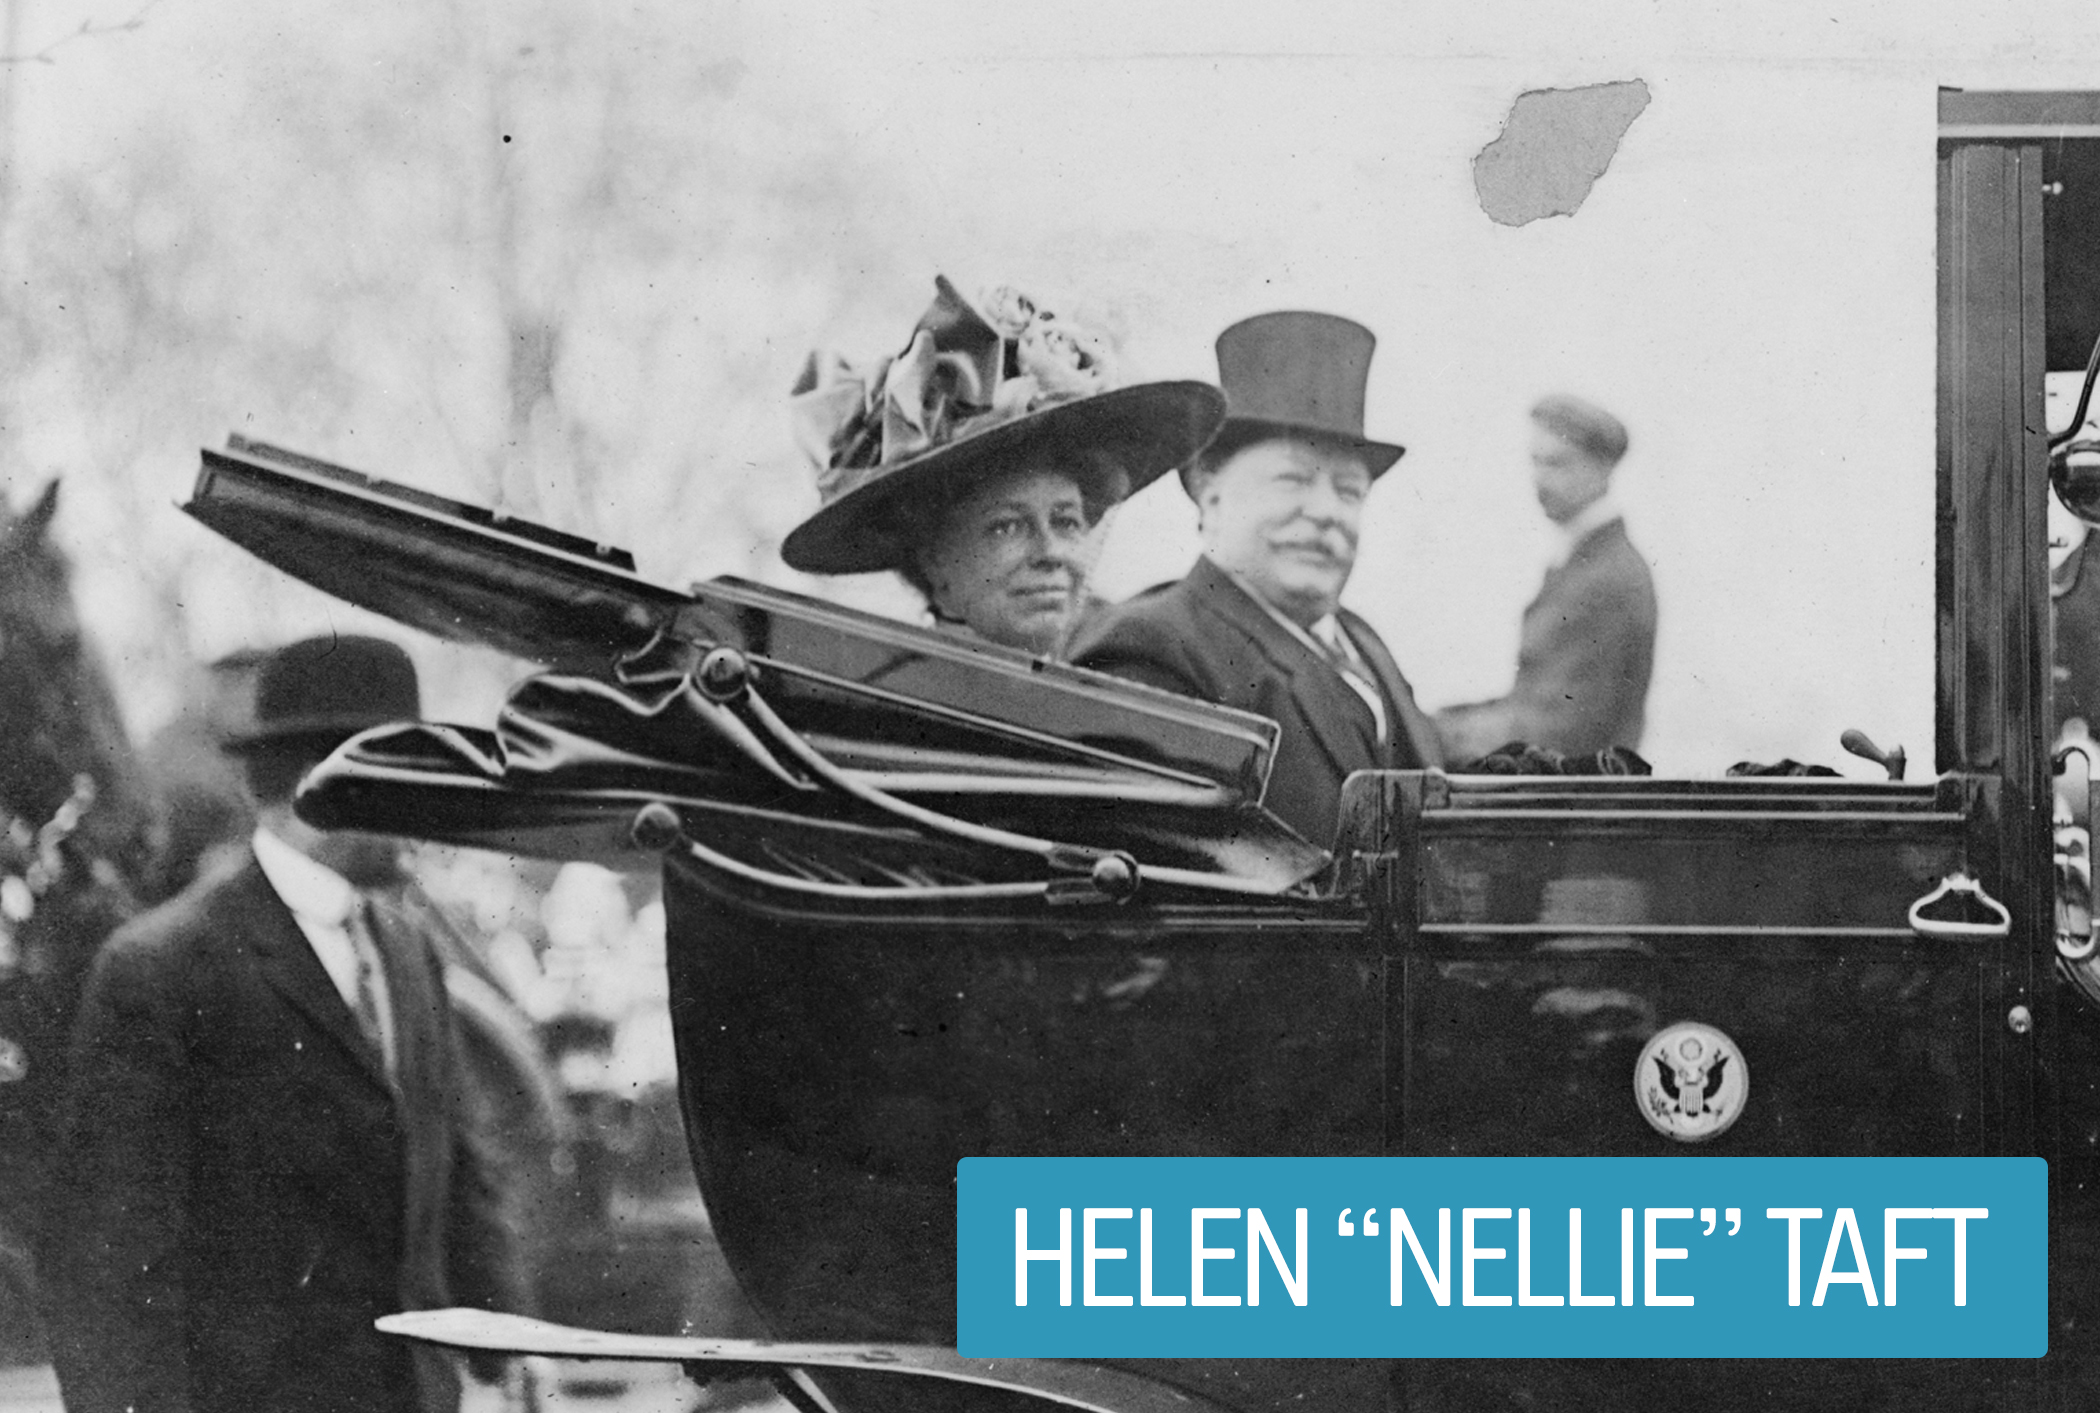 """Helen """"Nellie"""" Taft got a 1912 law passed that set health and safety standards for federal workplace conditions—the first act engineered by a First Lady. Mrs. Taft also upgraded presidential transportation from horse-drawn vehicles to automobiles—negotiating discounts with car companies in exchange for the promotion."""